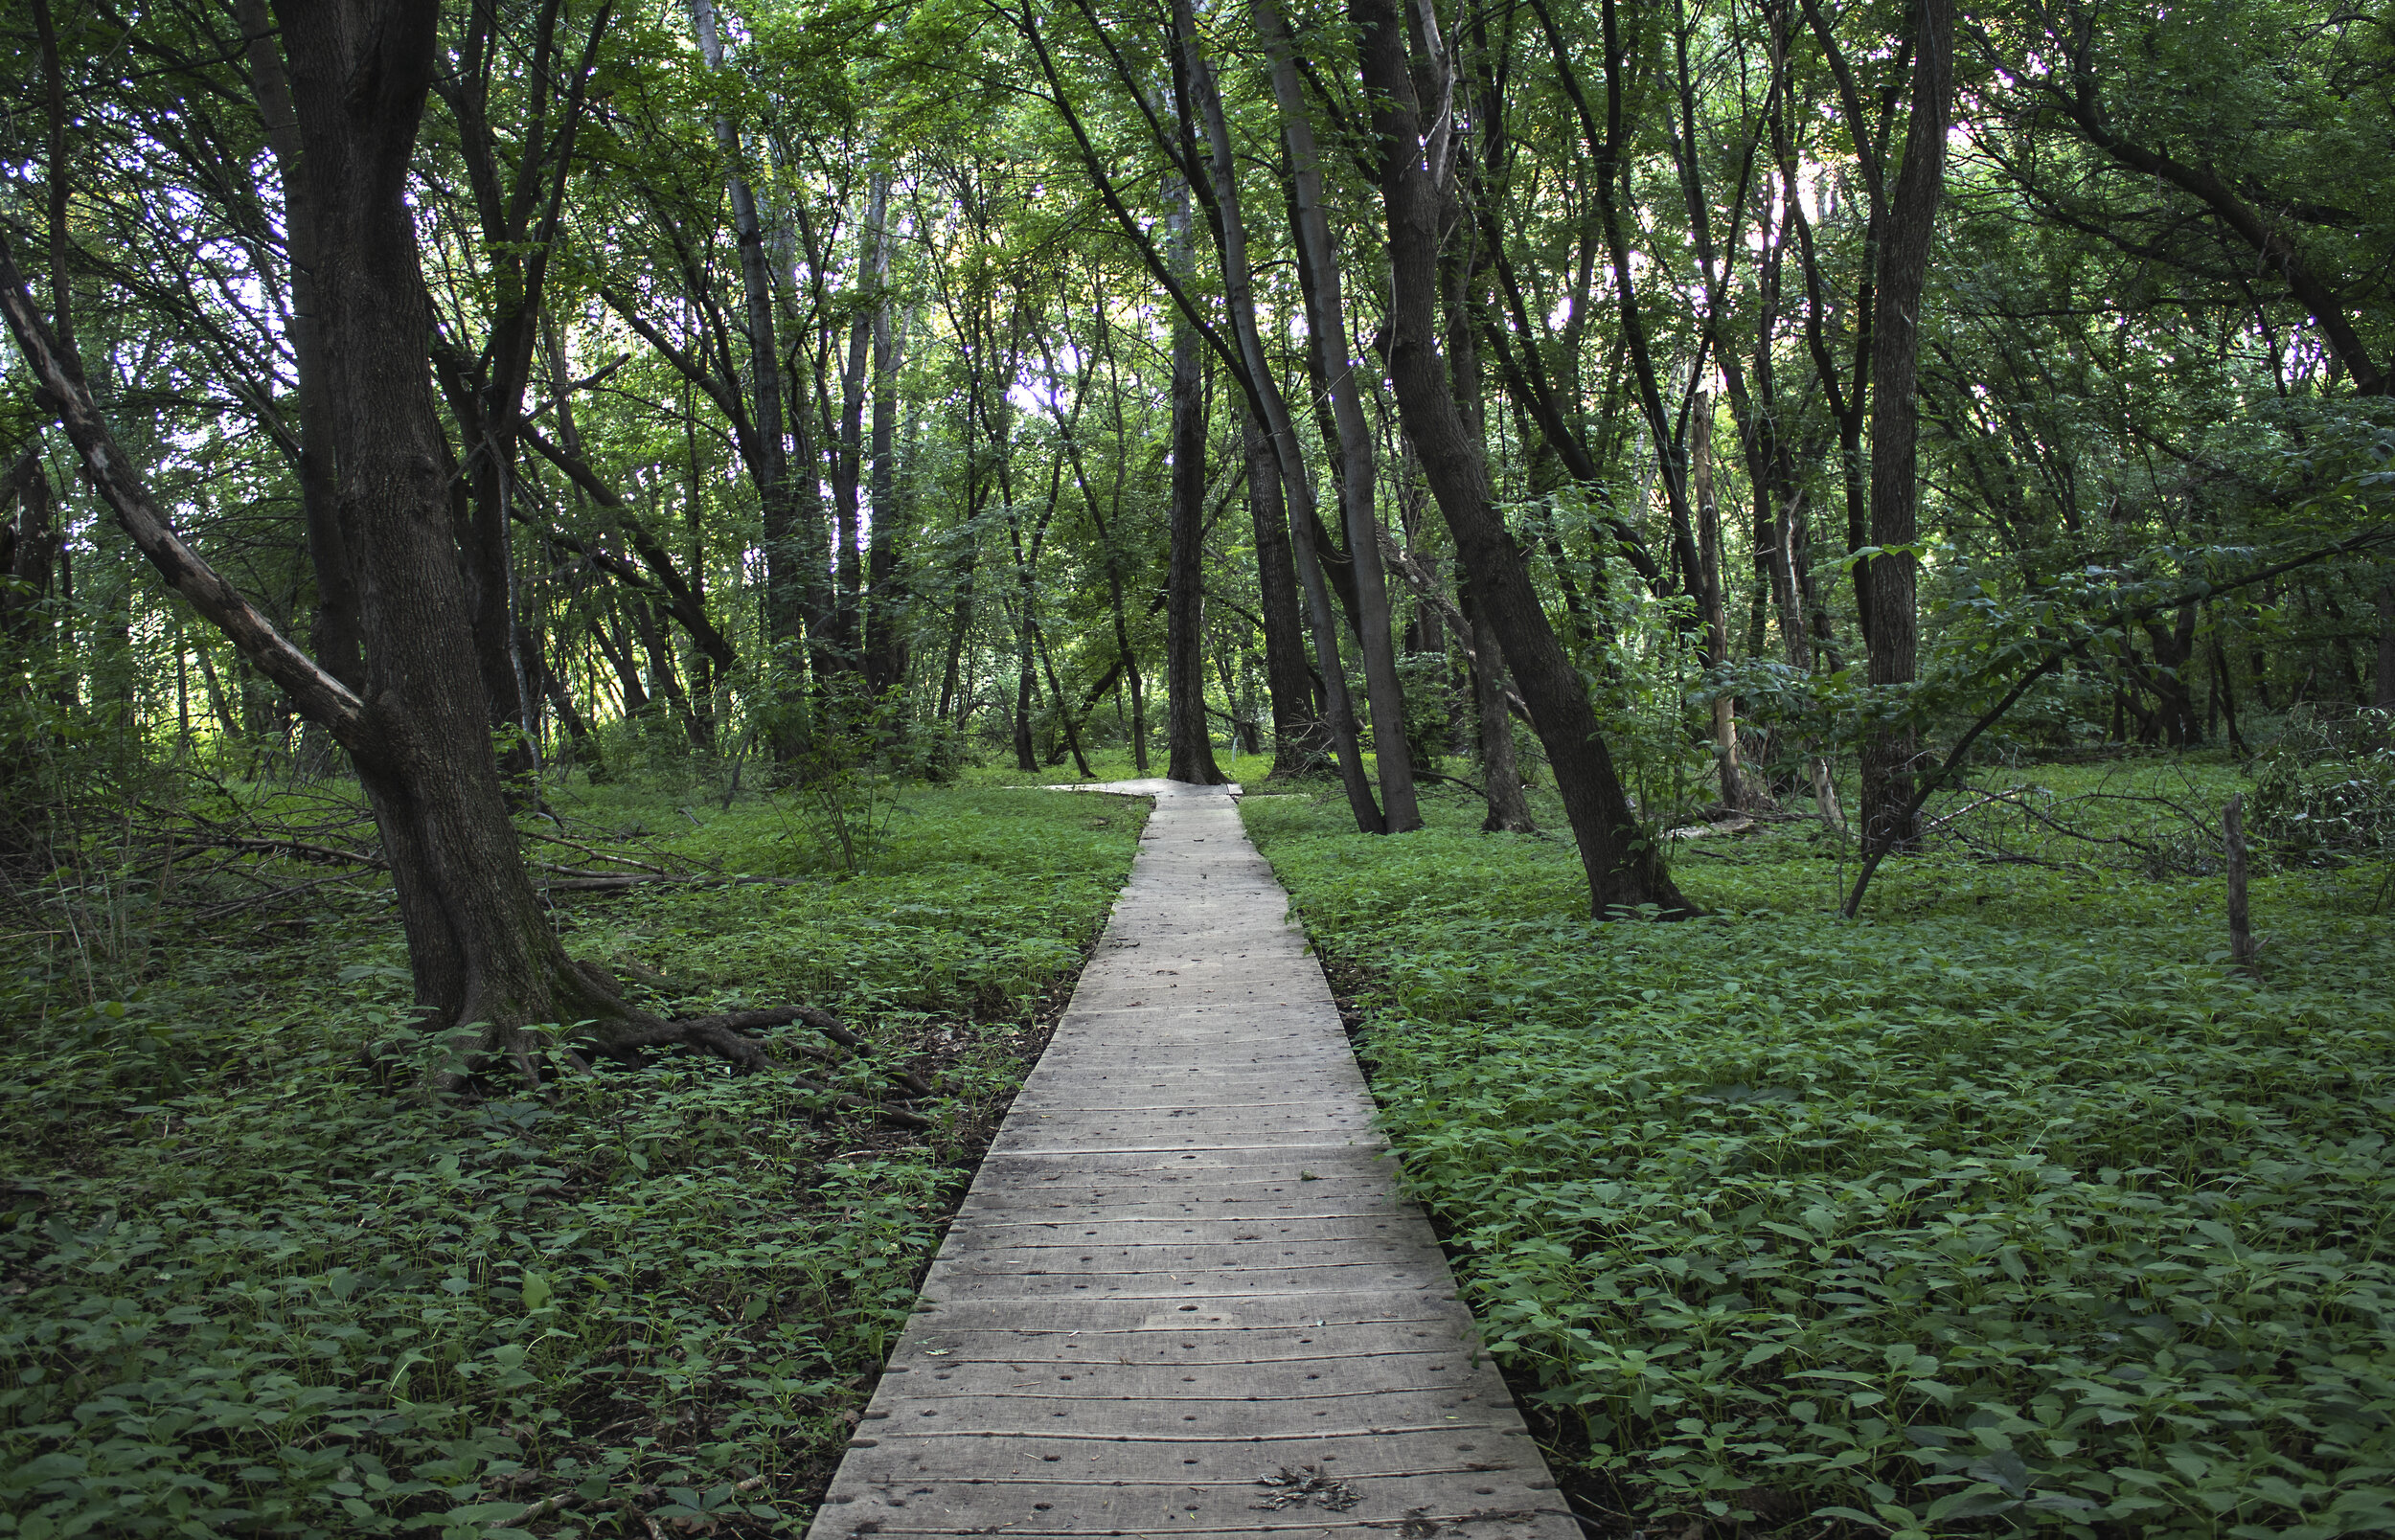 MPLS_Roberts Bird Sanctuary - Boardwalk_001_IMG_3361.jpg